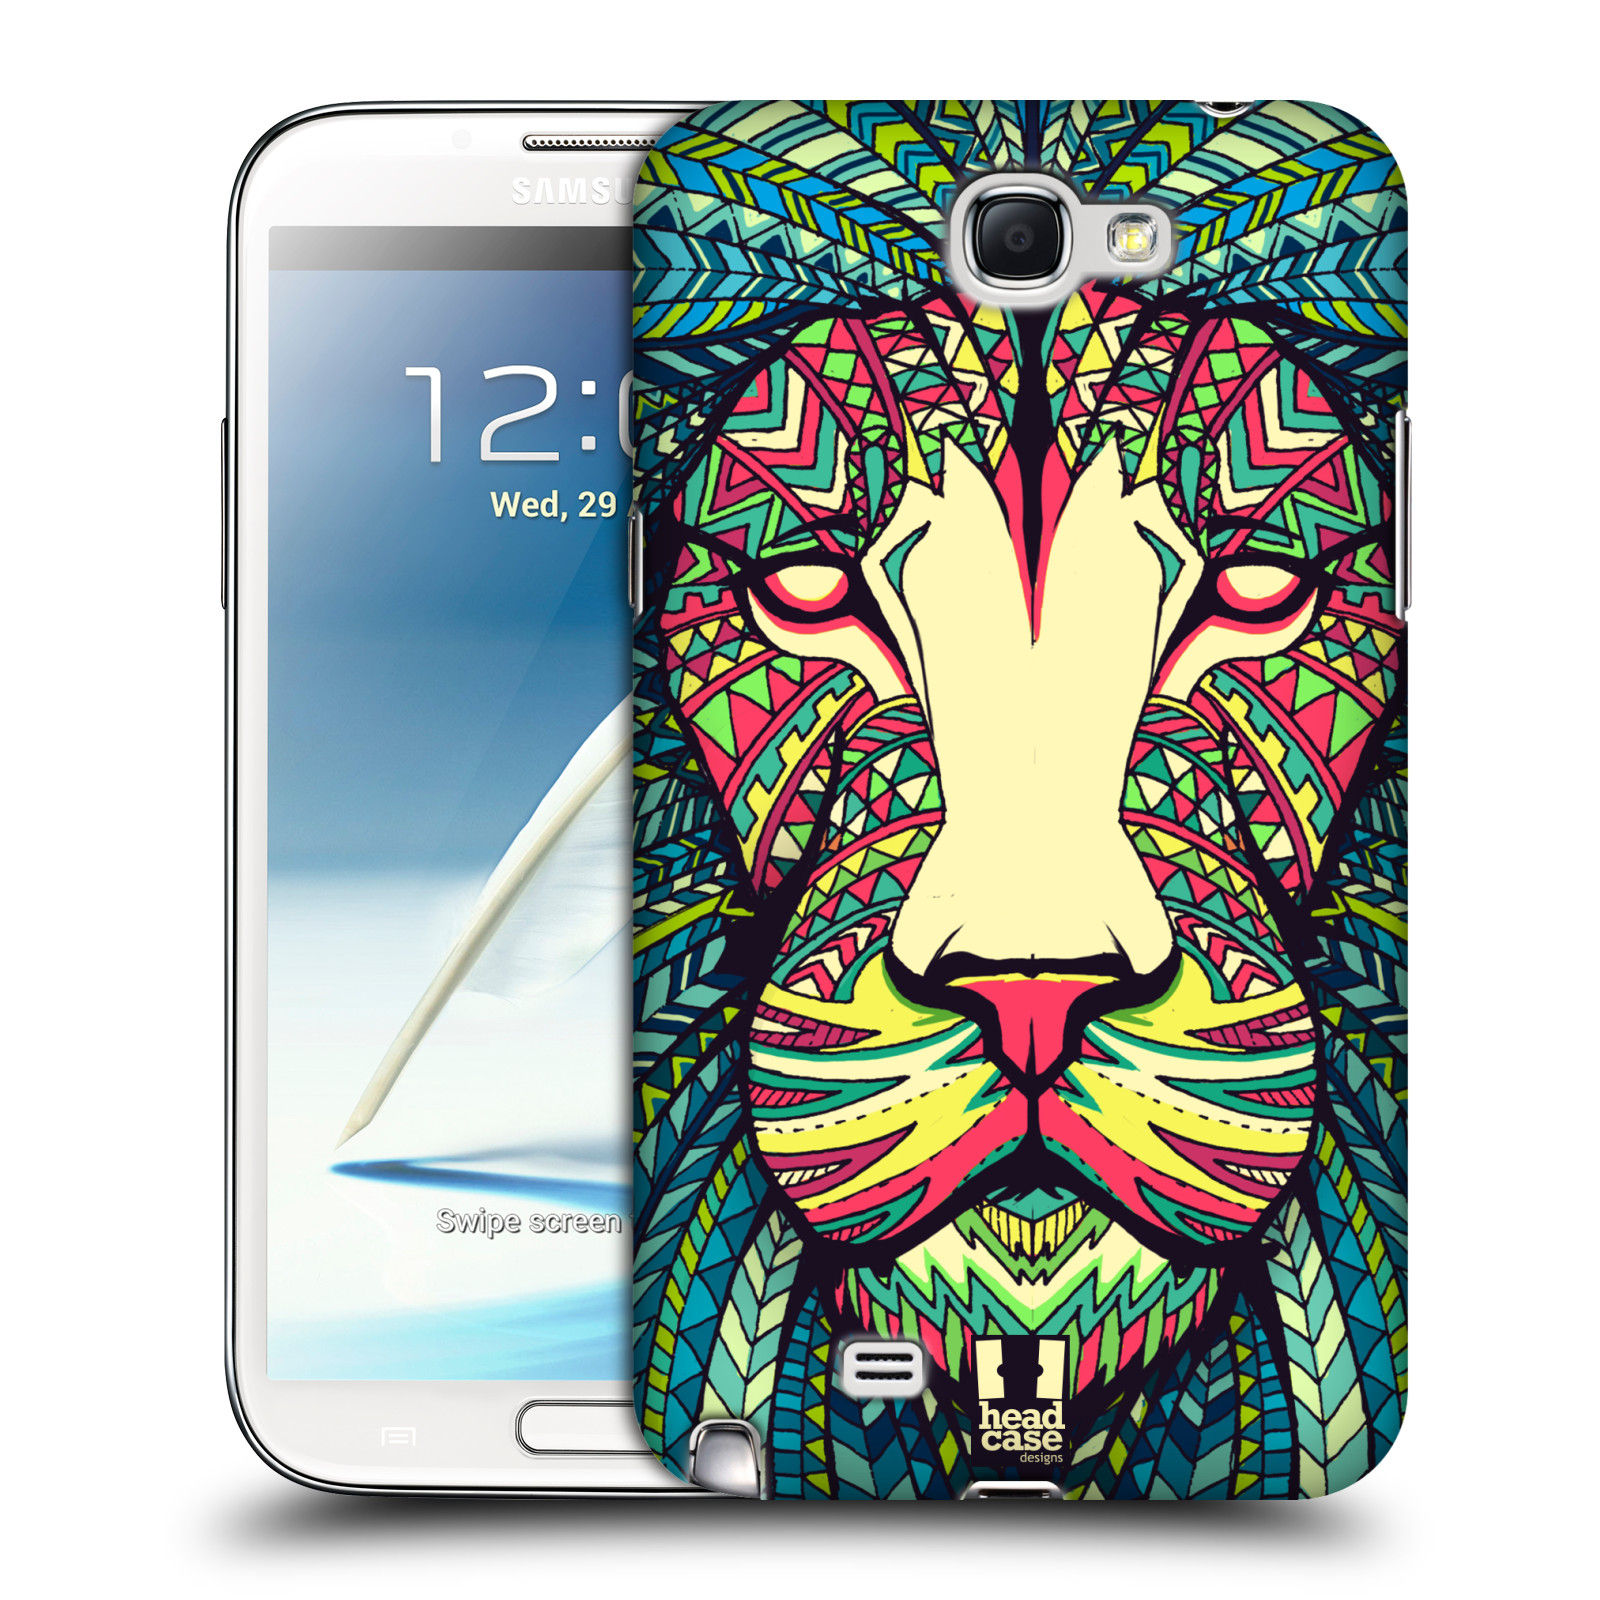 HEAD CASE AZTEC ANIMAL FACES BACK CASE COVER FOR SAMSUNG GALAXY NOTE 2 II N7100